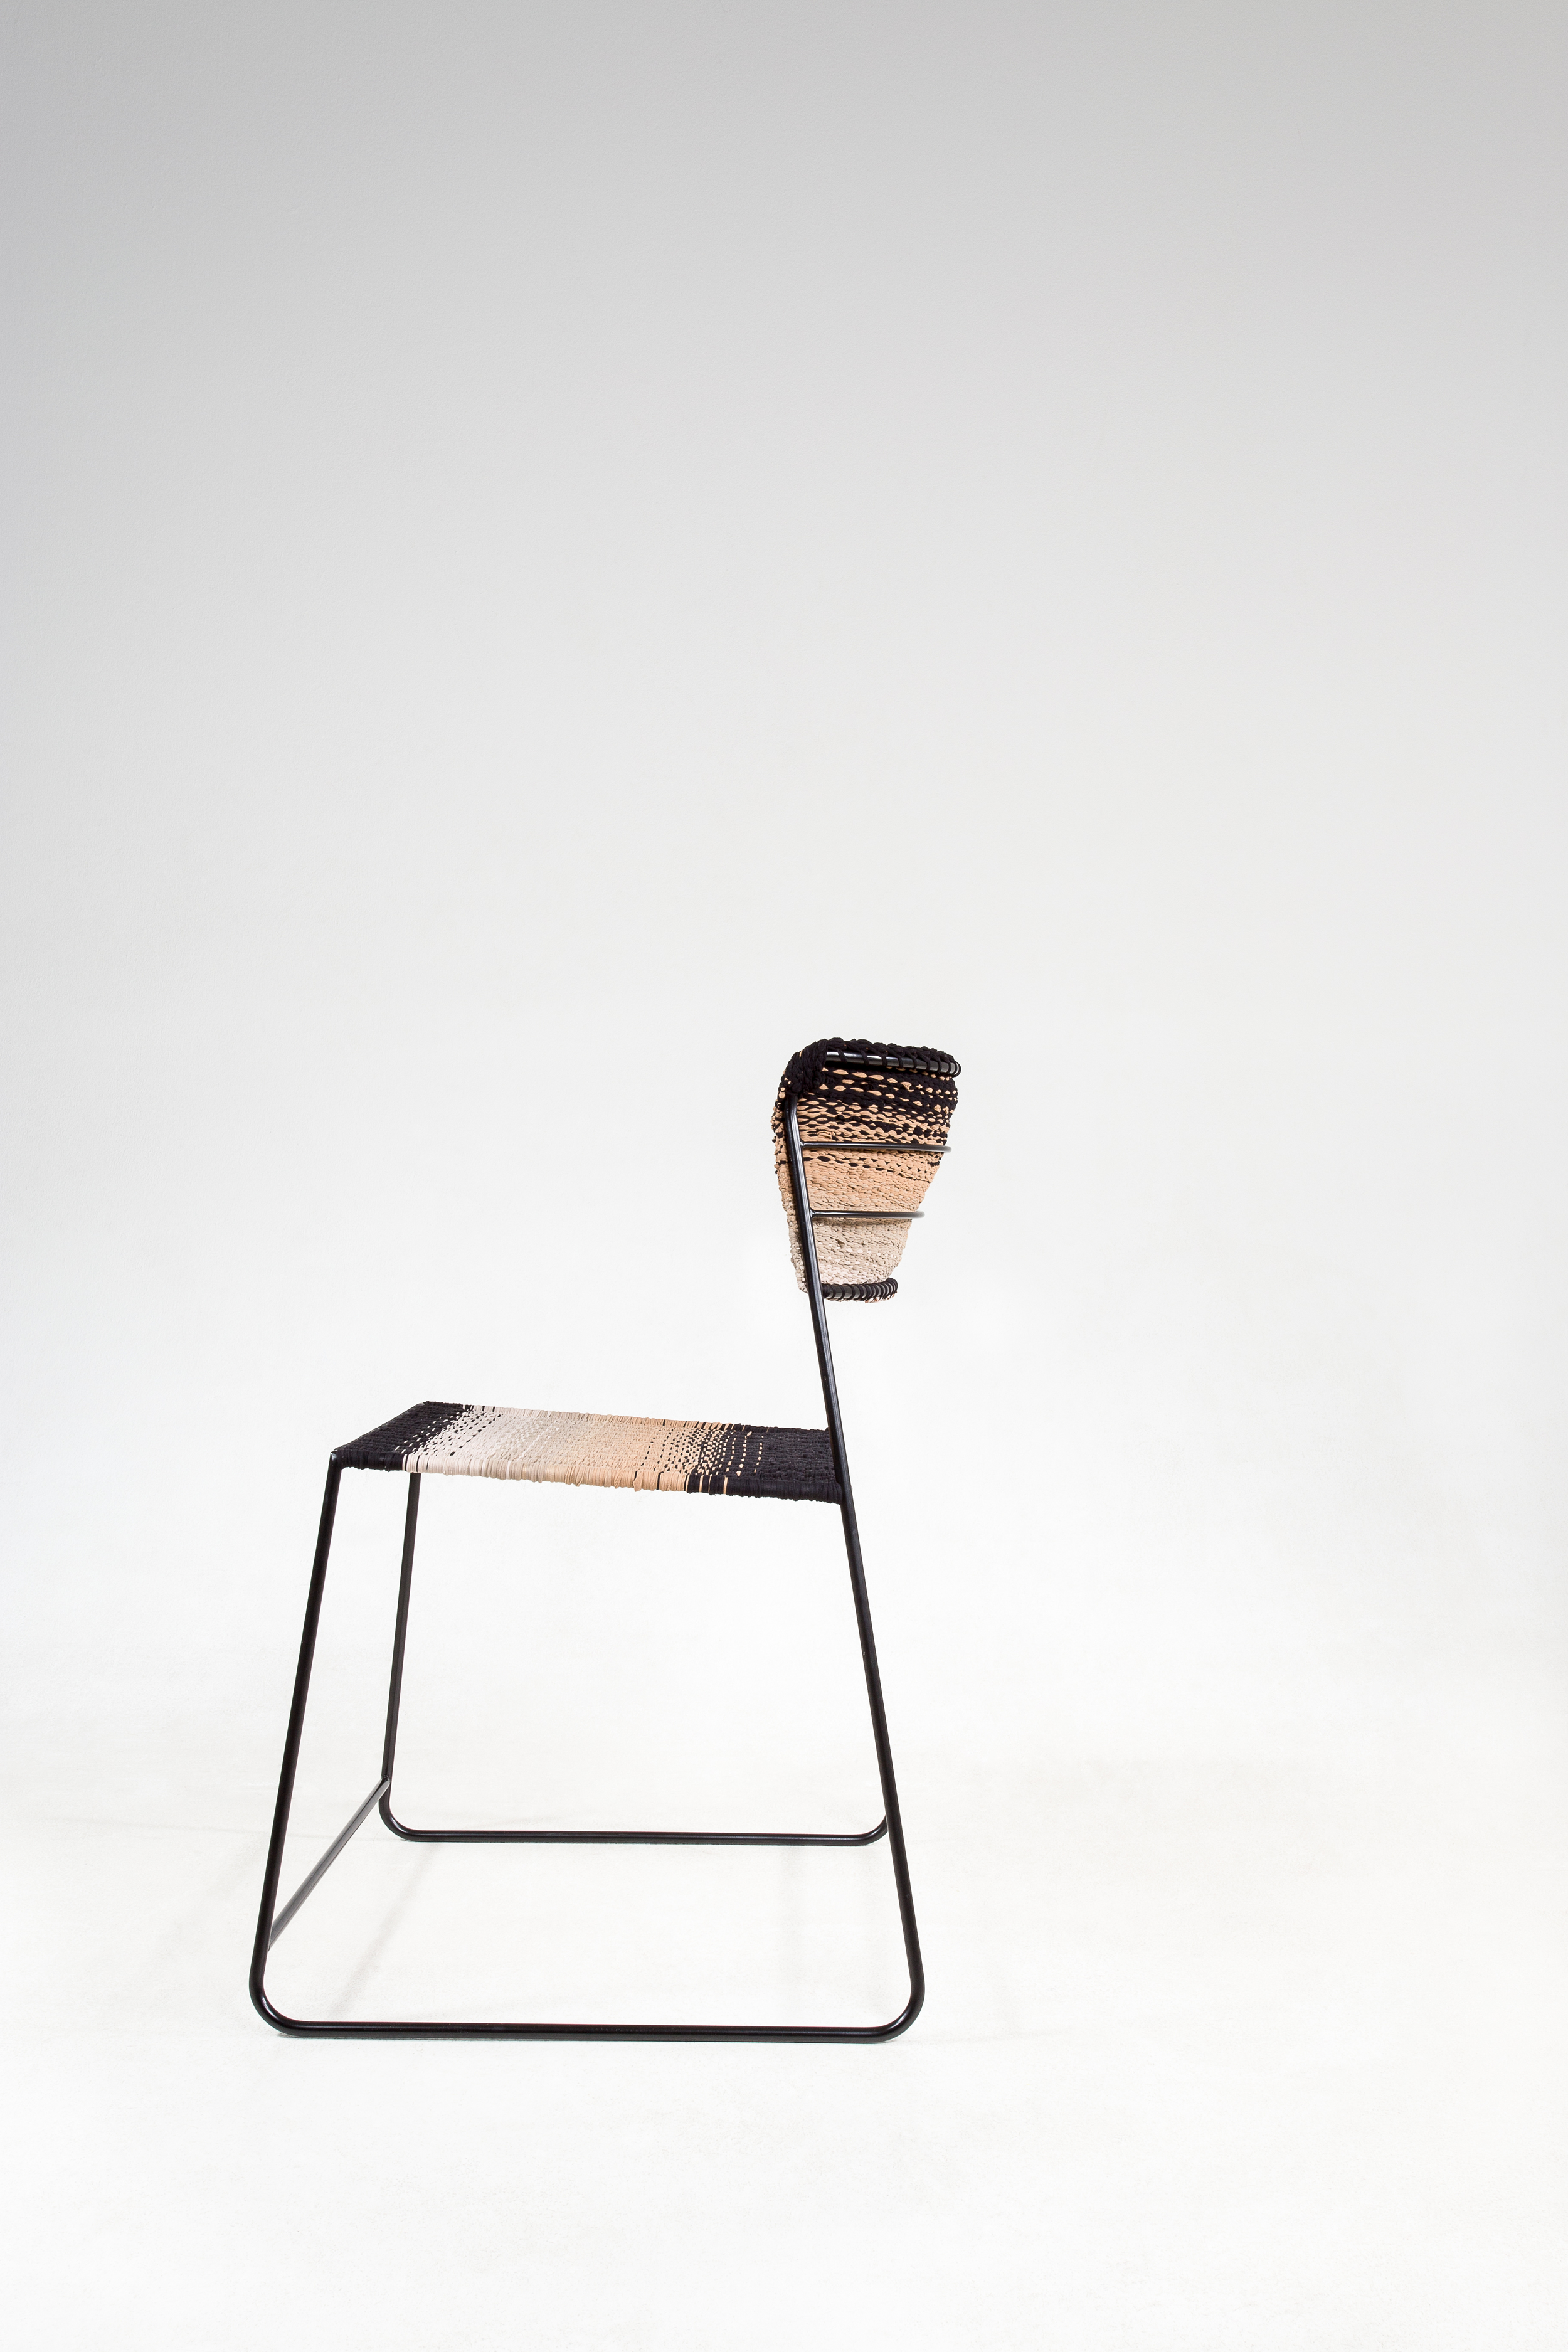 50 DEN - The chair made out of tights by Anna Herrmann